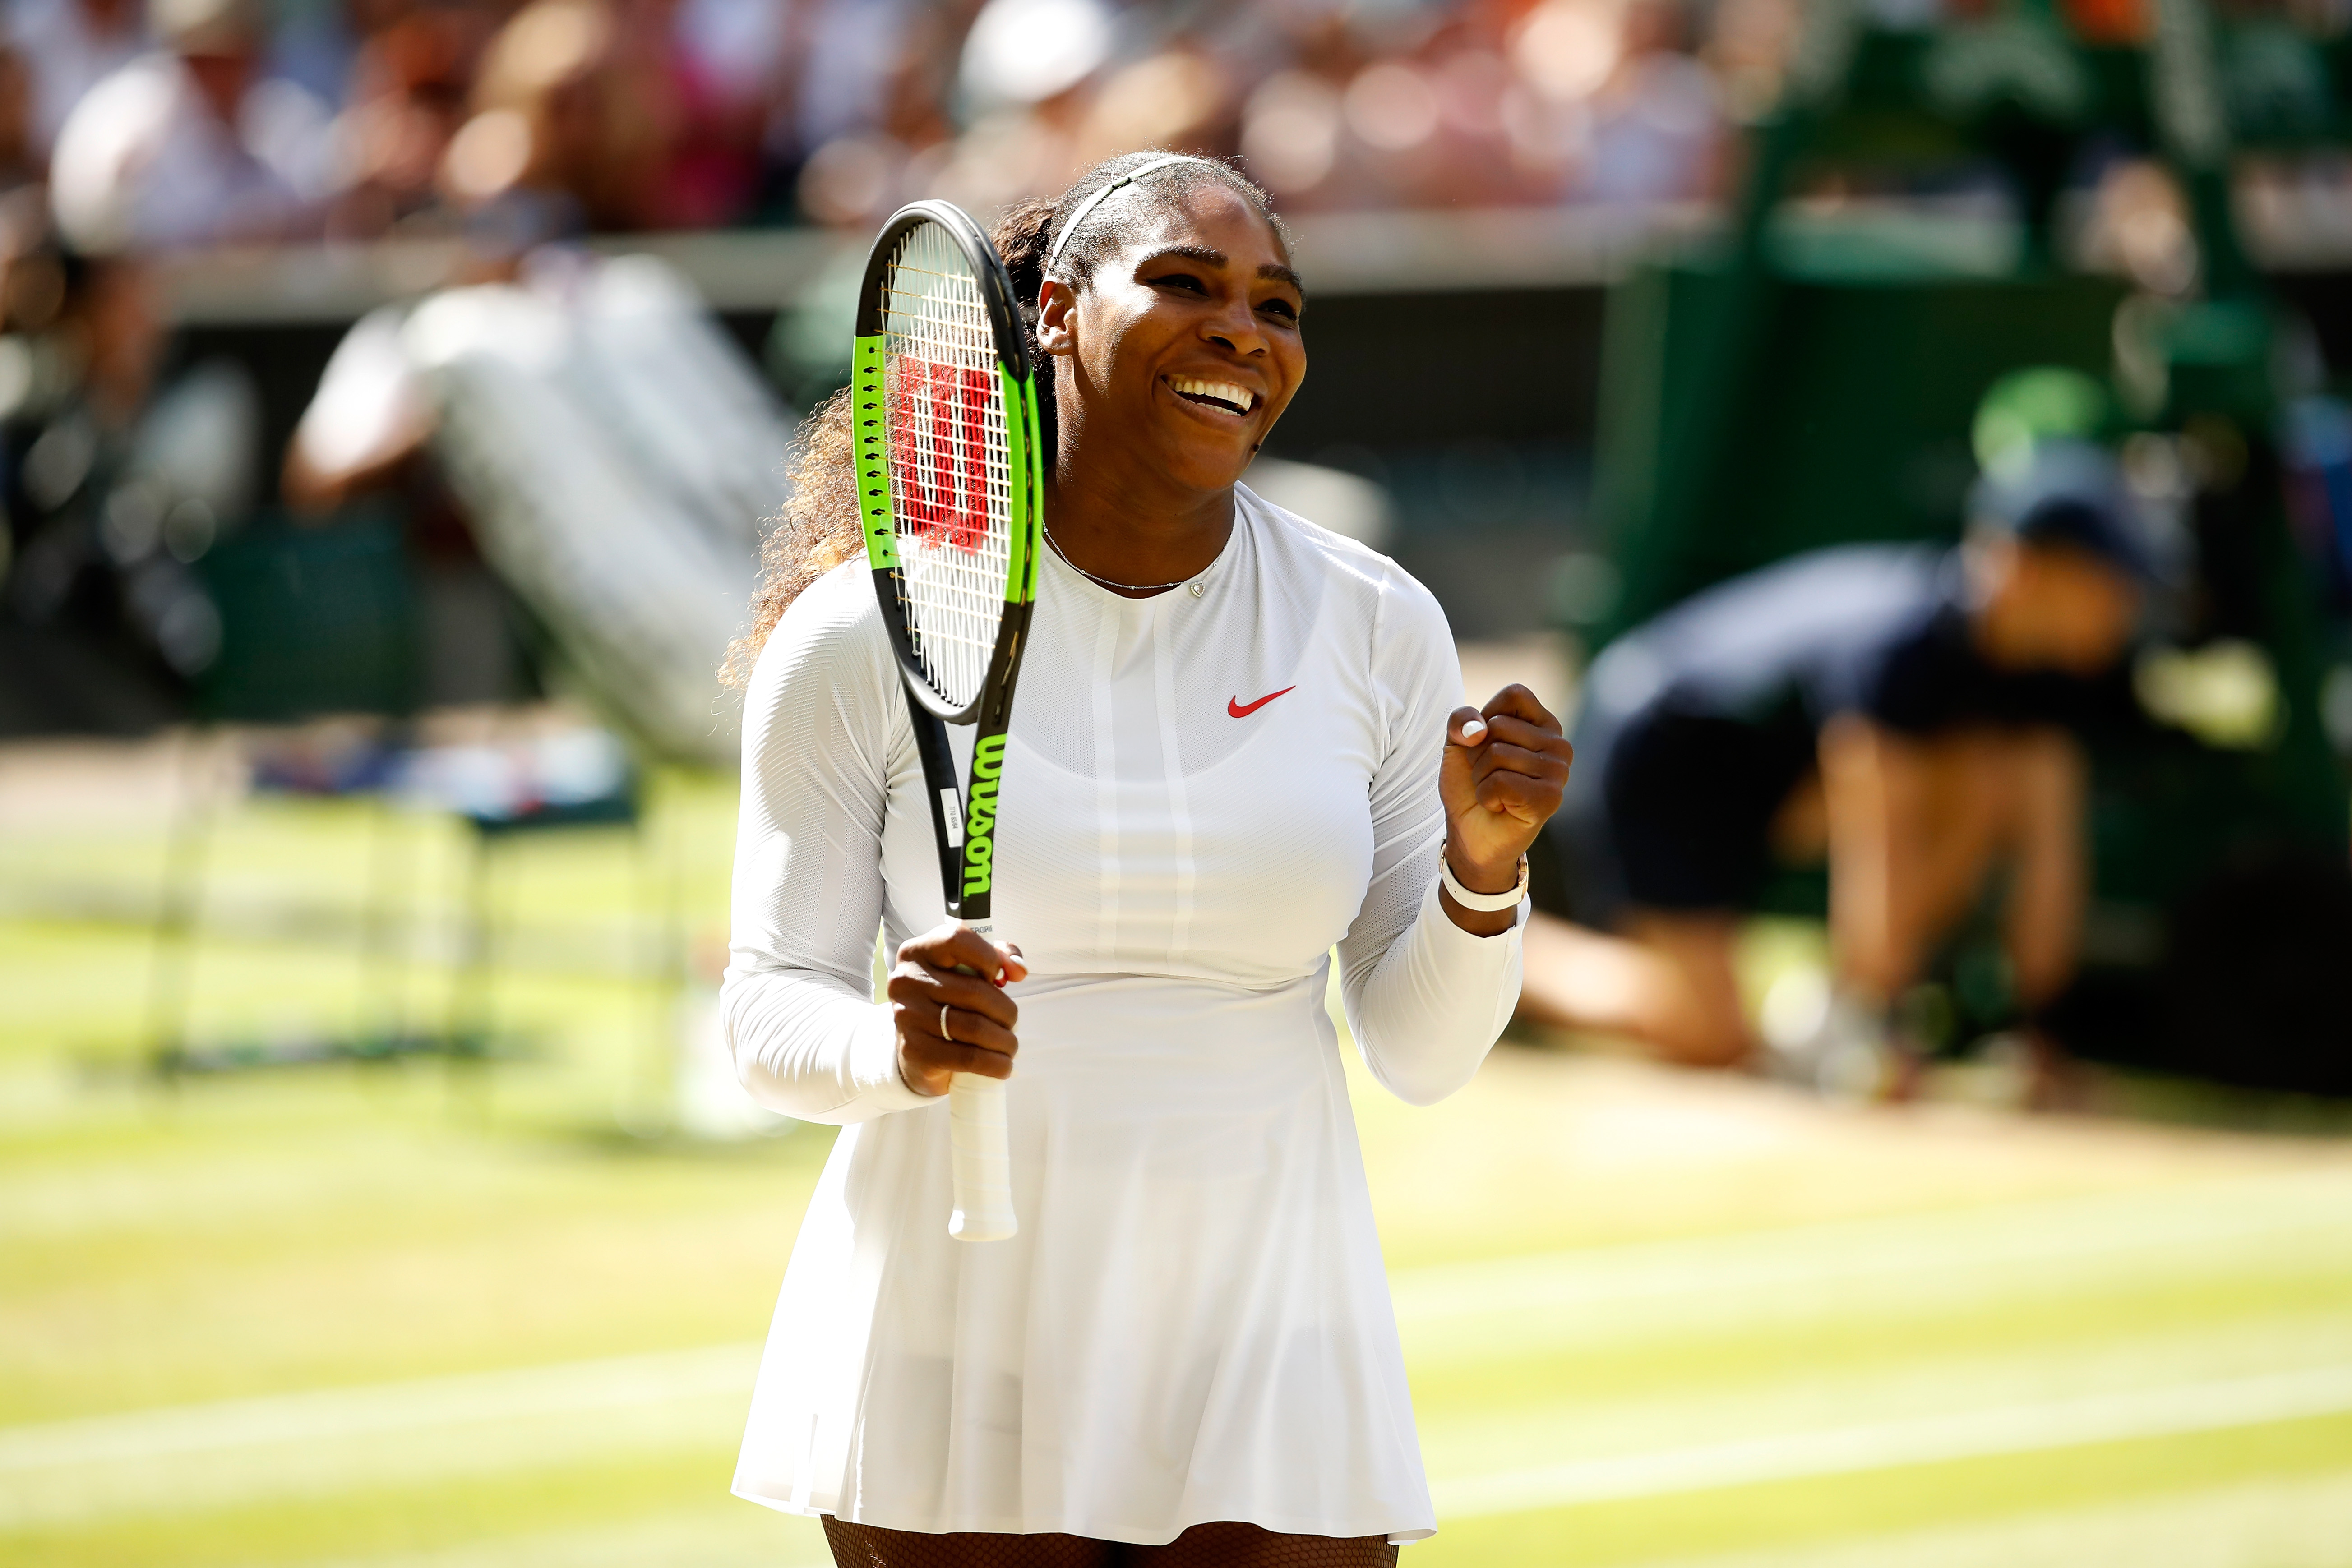 Serena Williams of the United States (Source: Getty Images)